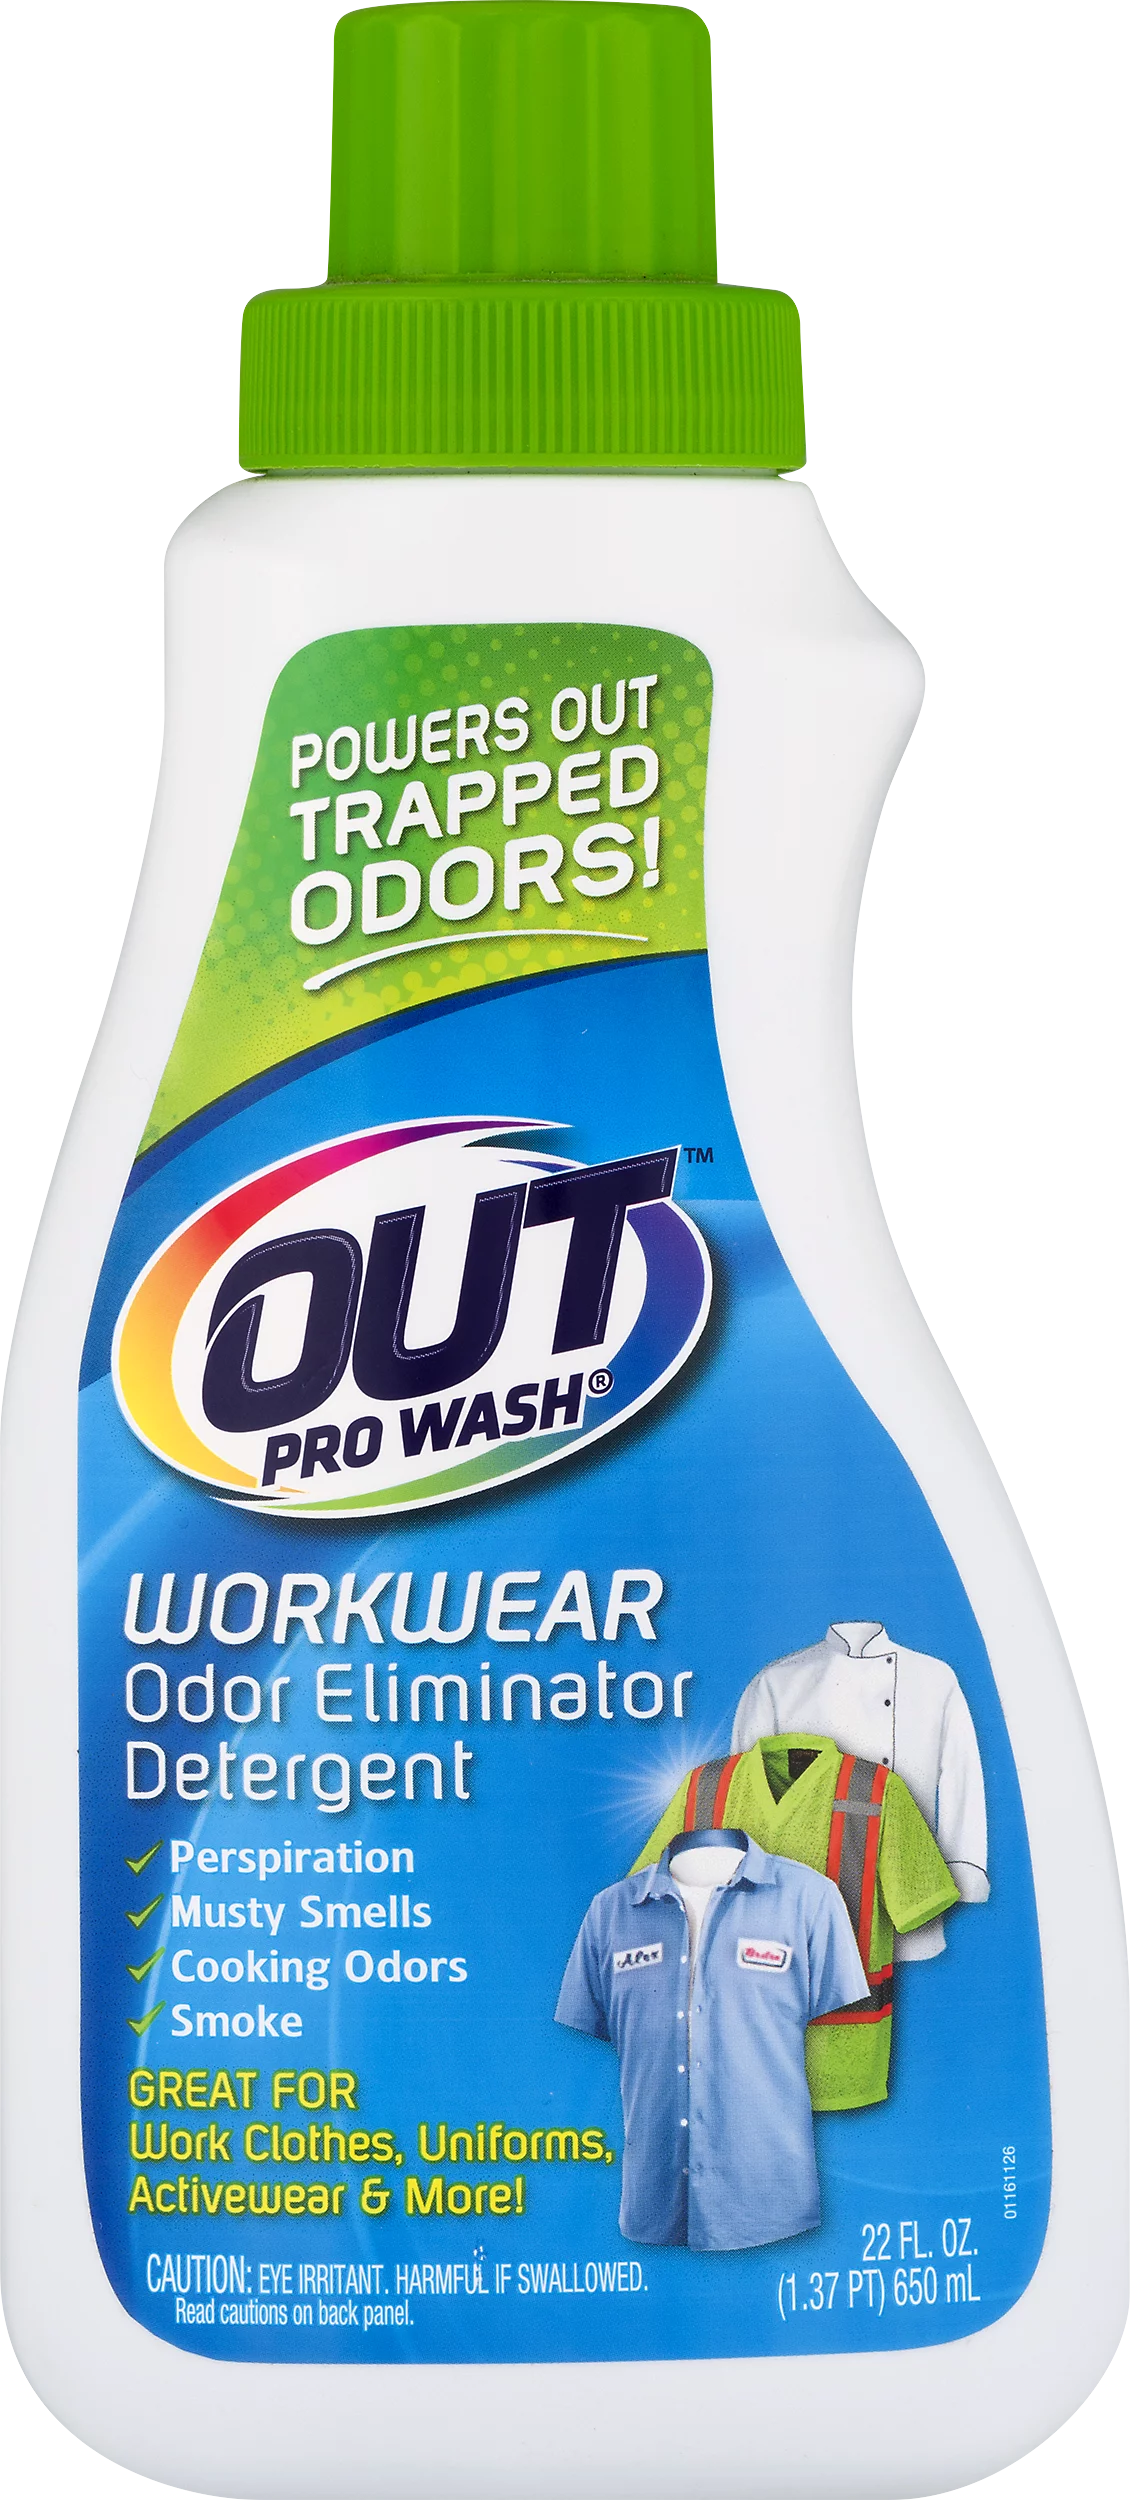 How To Get Urine Smell Out Of Clothes Out Prowash Workwear Odor Eliminator Detergent 22 Fl Oz